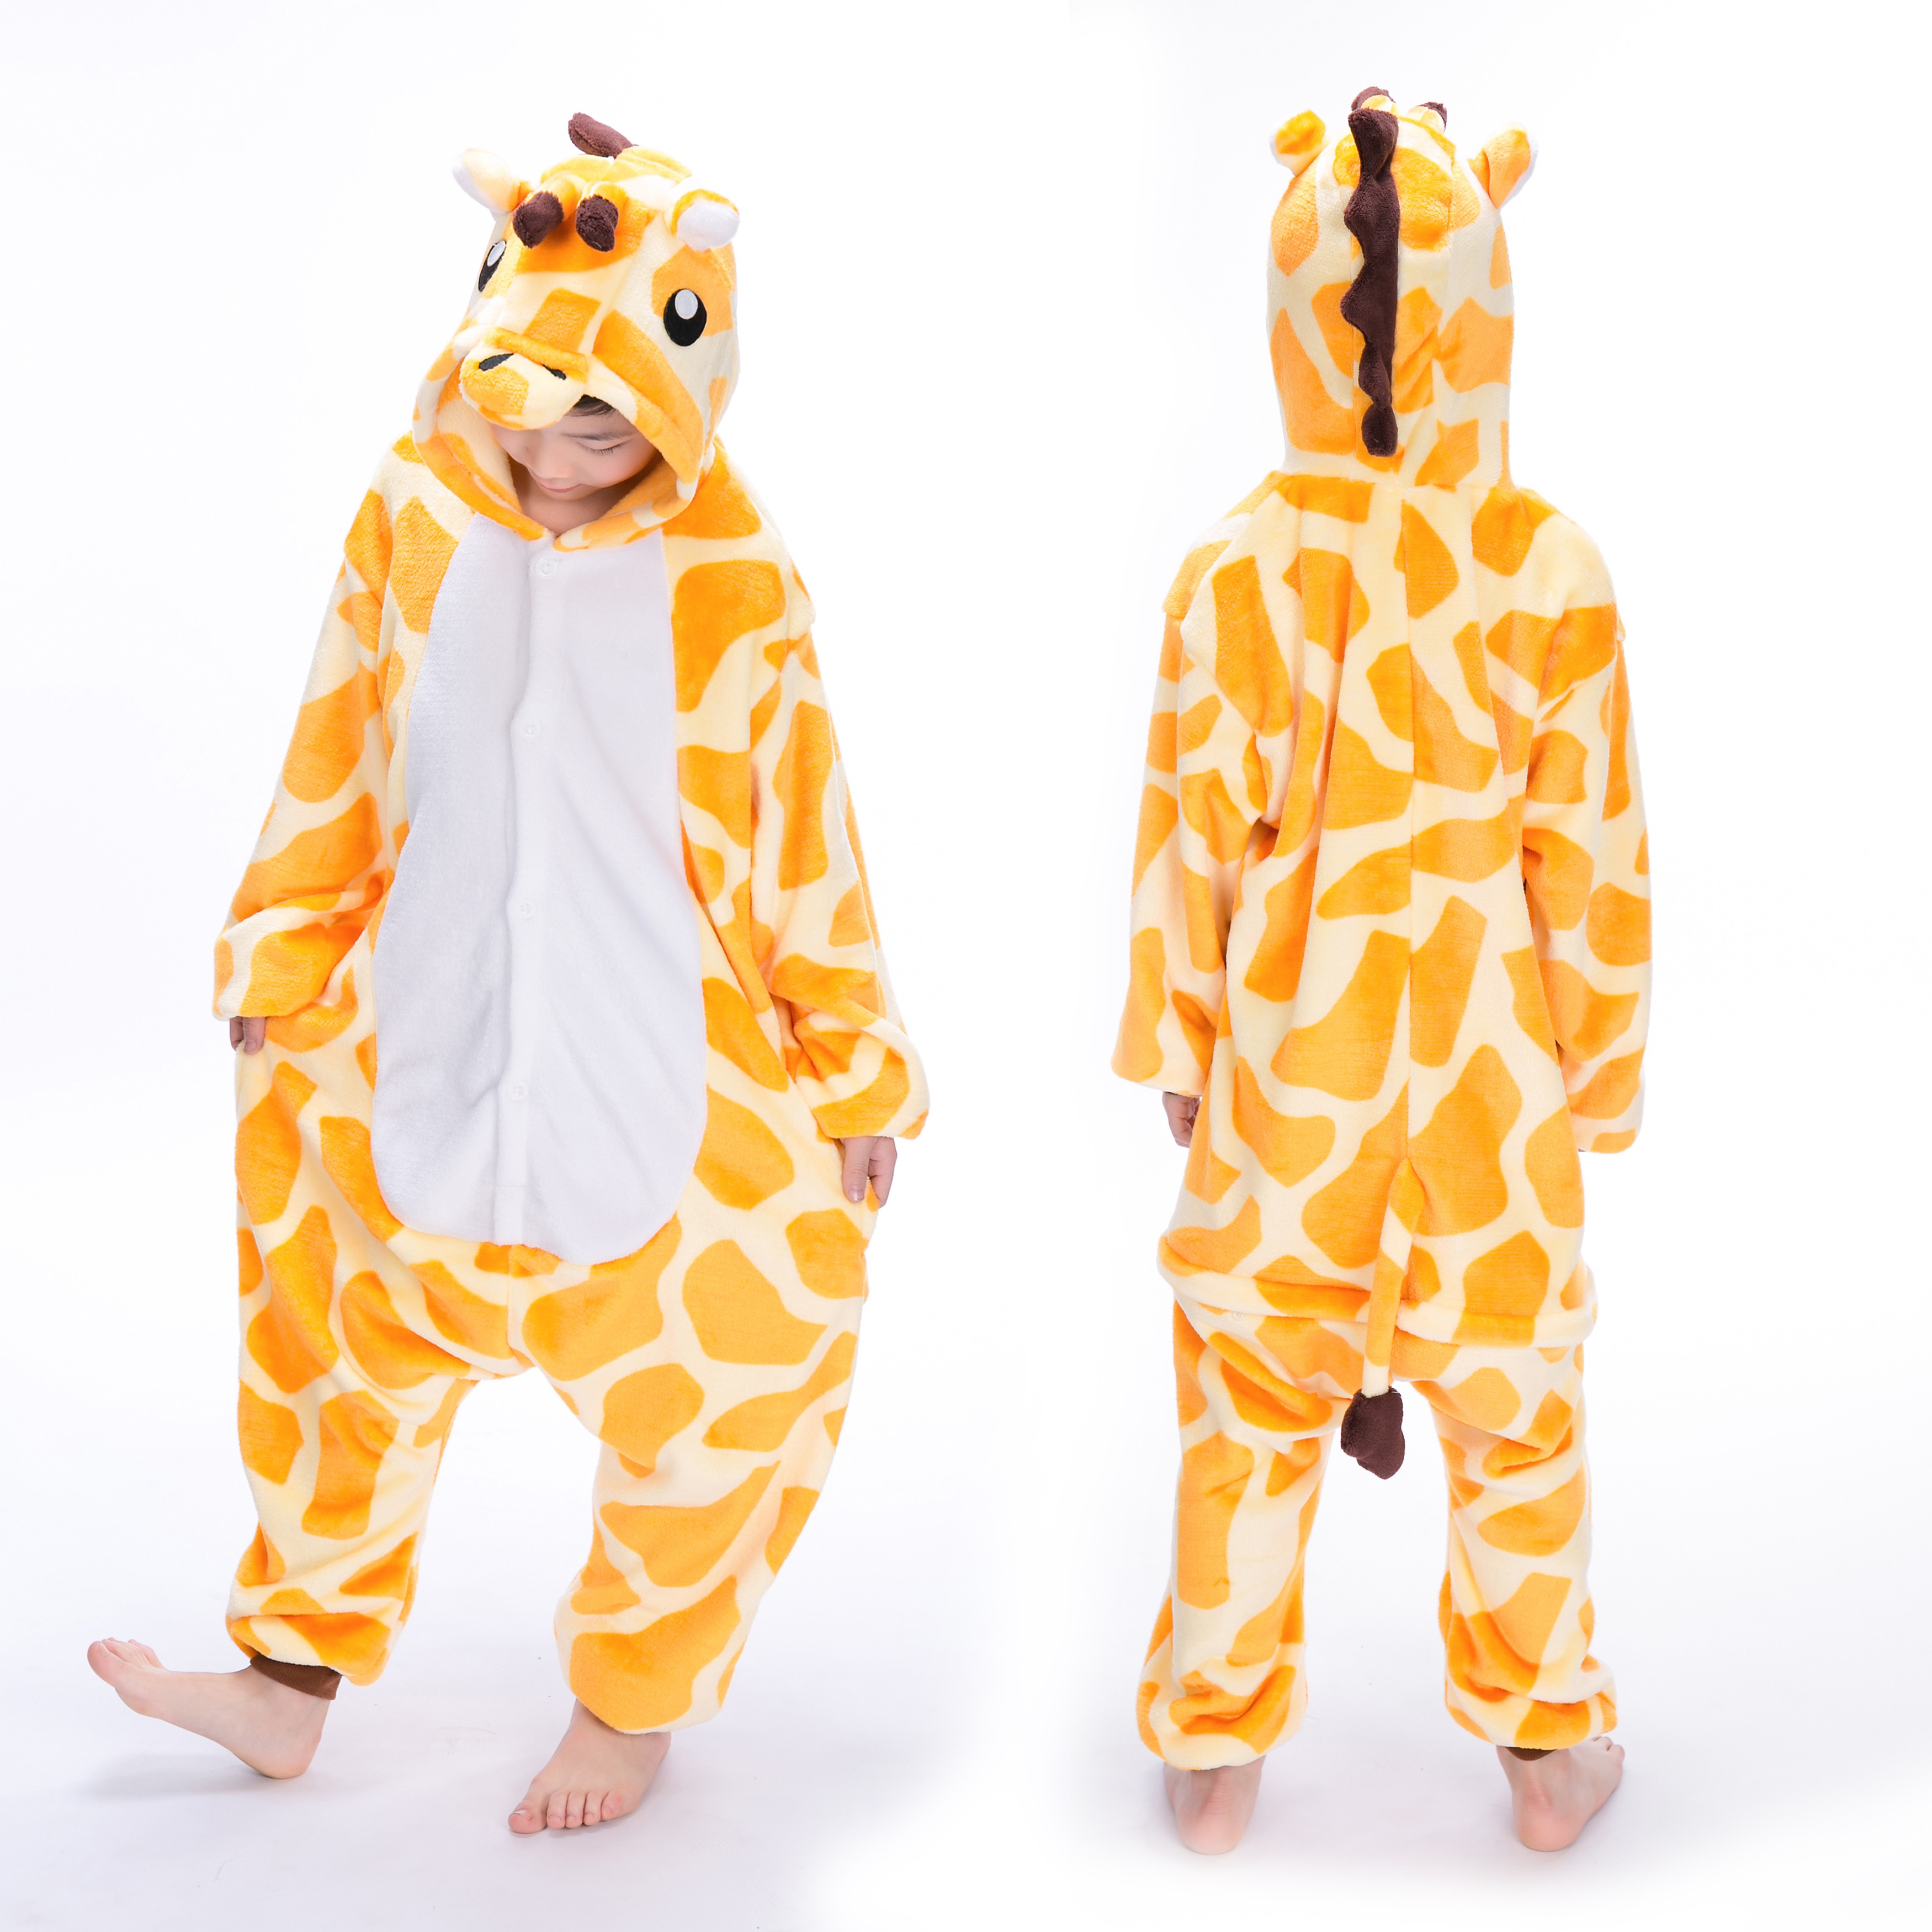 812bd1305054 Giraffe Onesie for Kid Animal Kigurumi Pajama Halloween Costumes